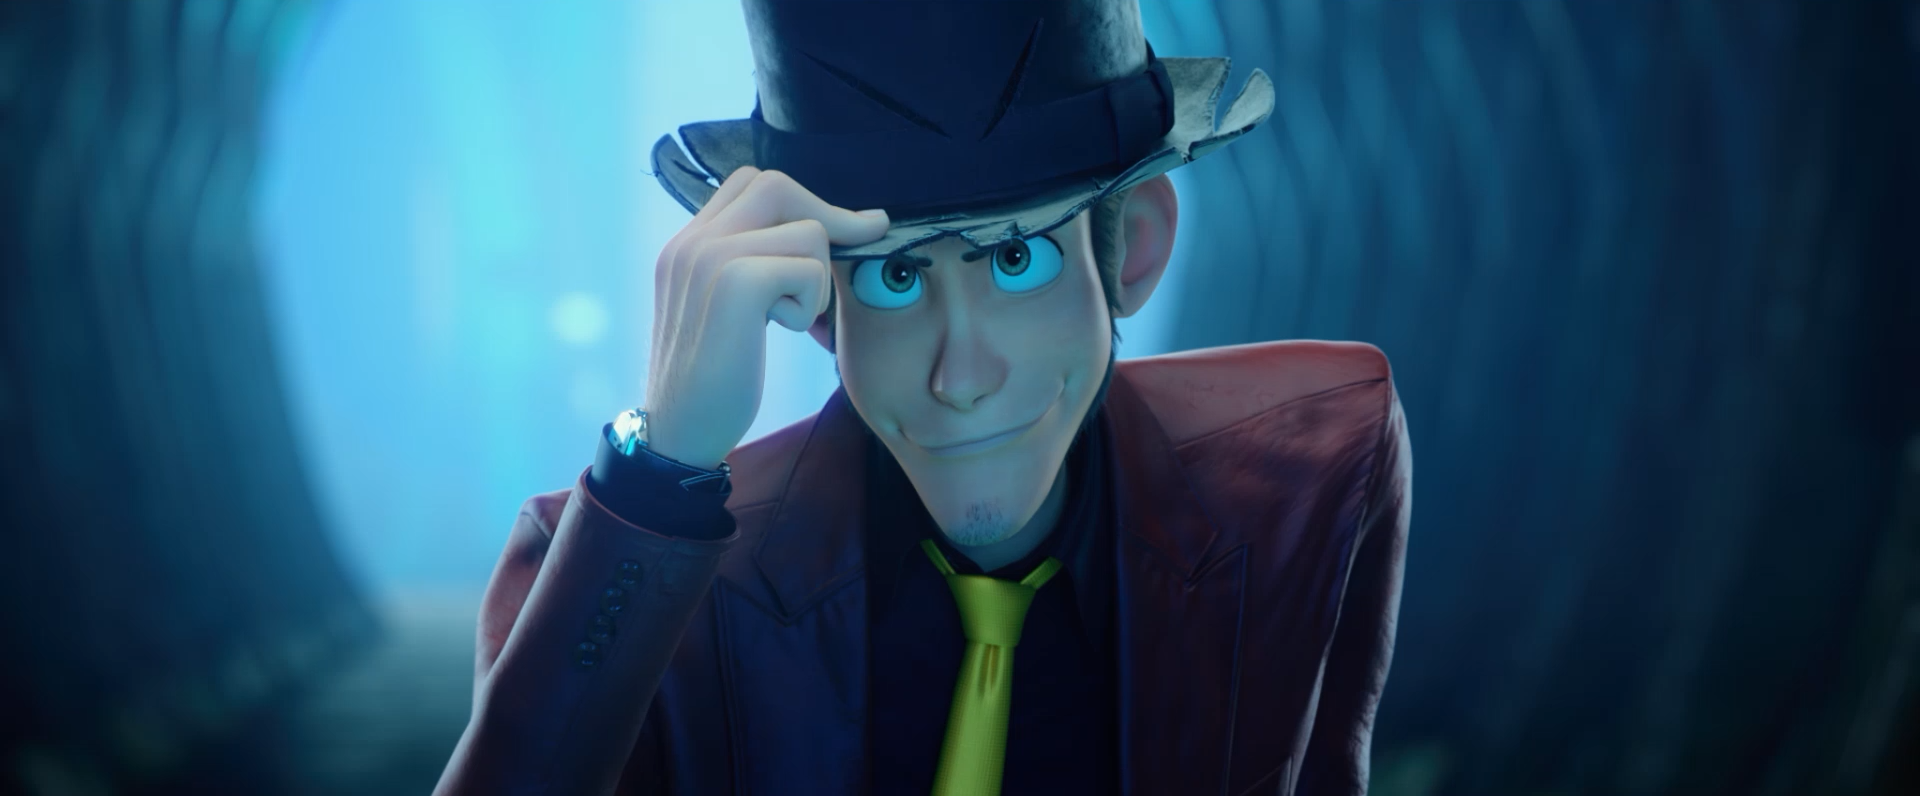 GKIDS Films Announces the Acquisition of the North American Rights to LUPIN THE 3RD: THE FIRST